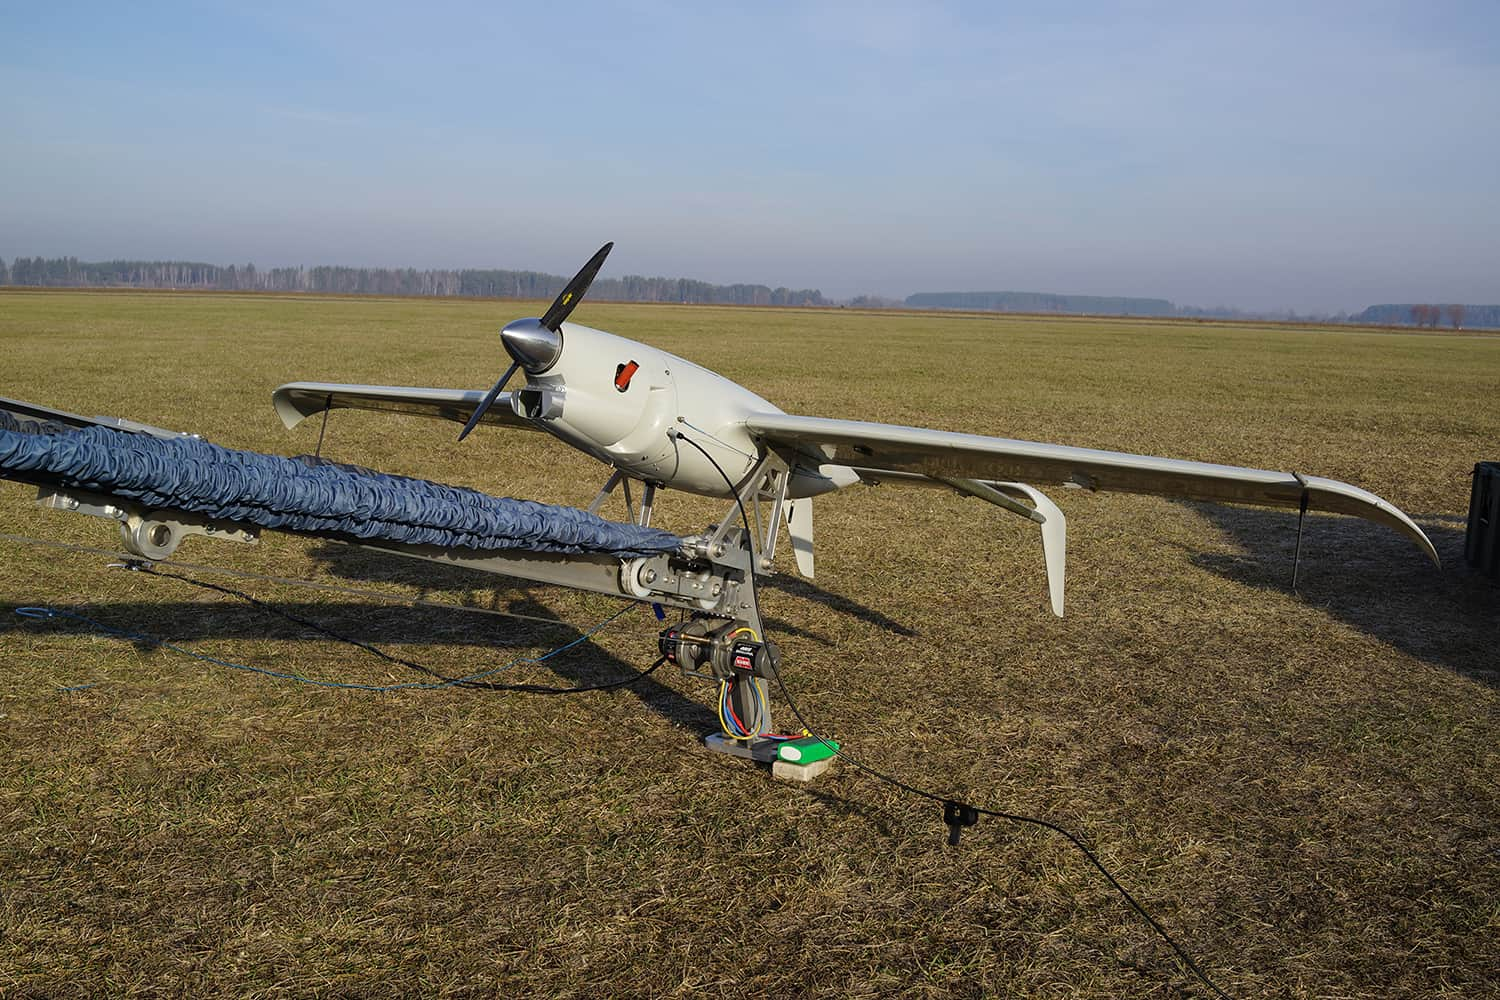 Skyeton Develops Small UAS for Long-Range & Extended-Endurance Missions   Unmanned Systems Technology